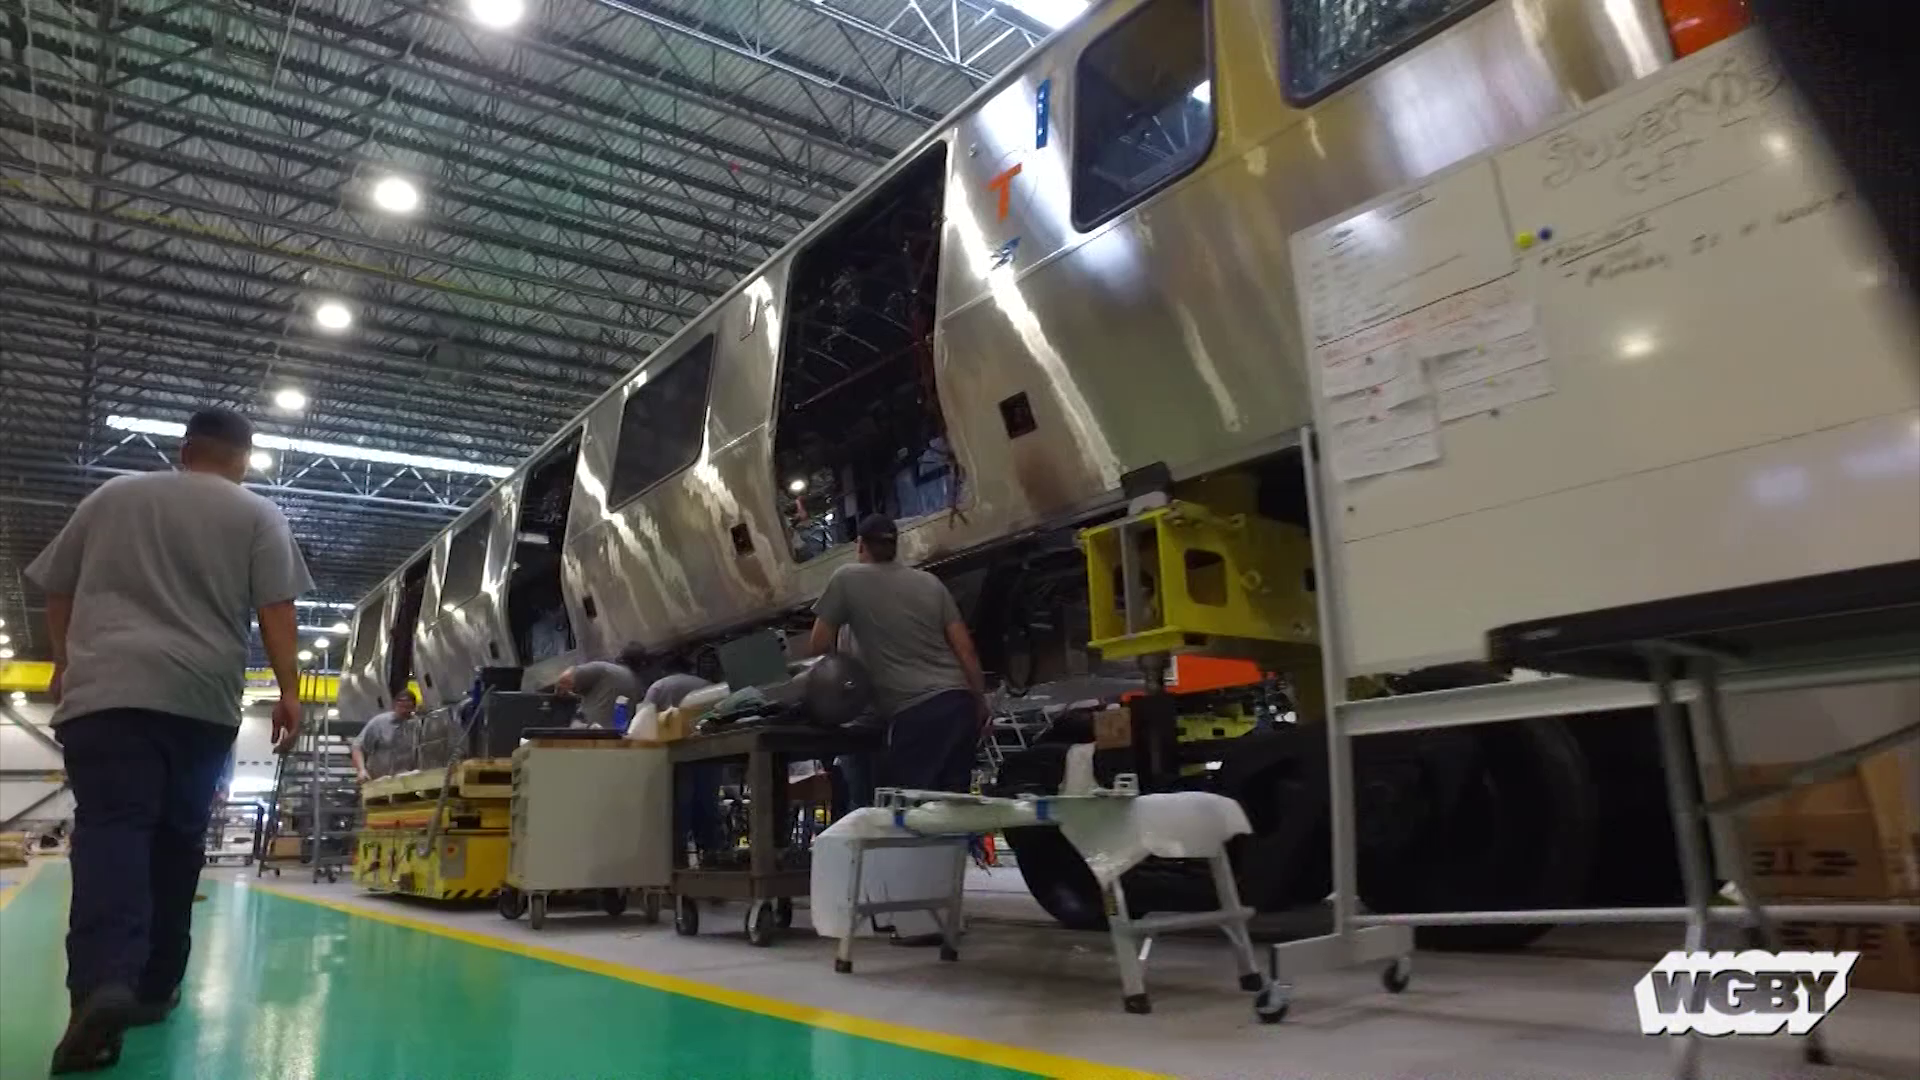 China Railway Rolling Stock Corp. provided manufacturing jobs in Springfield, but the future of the company is uncertain thanks to the trade war with China.